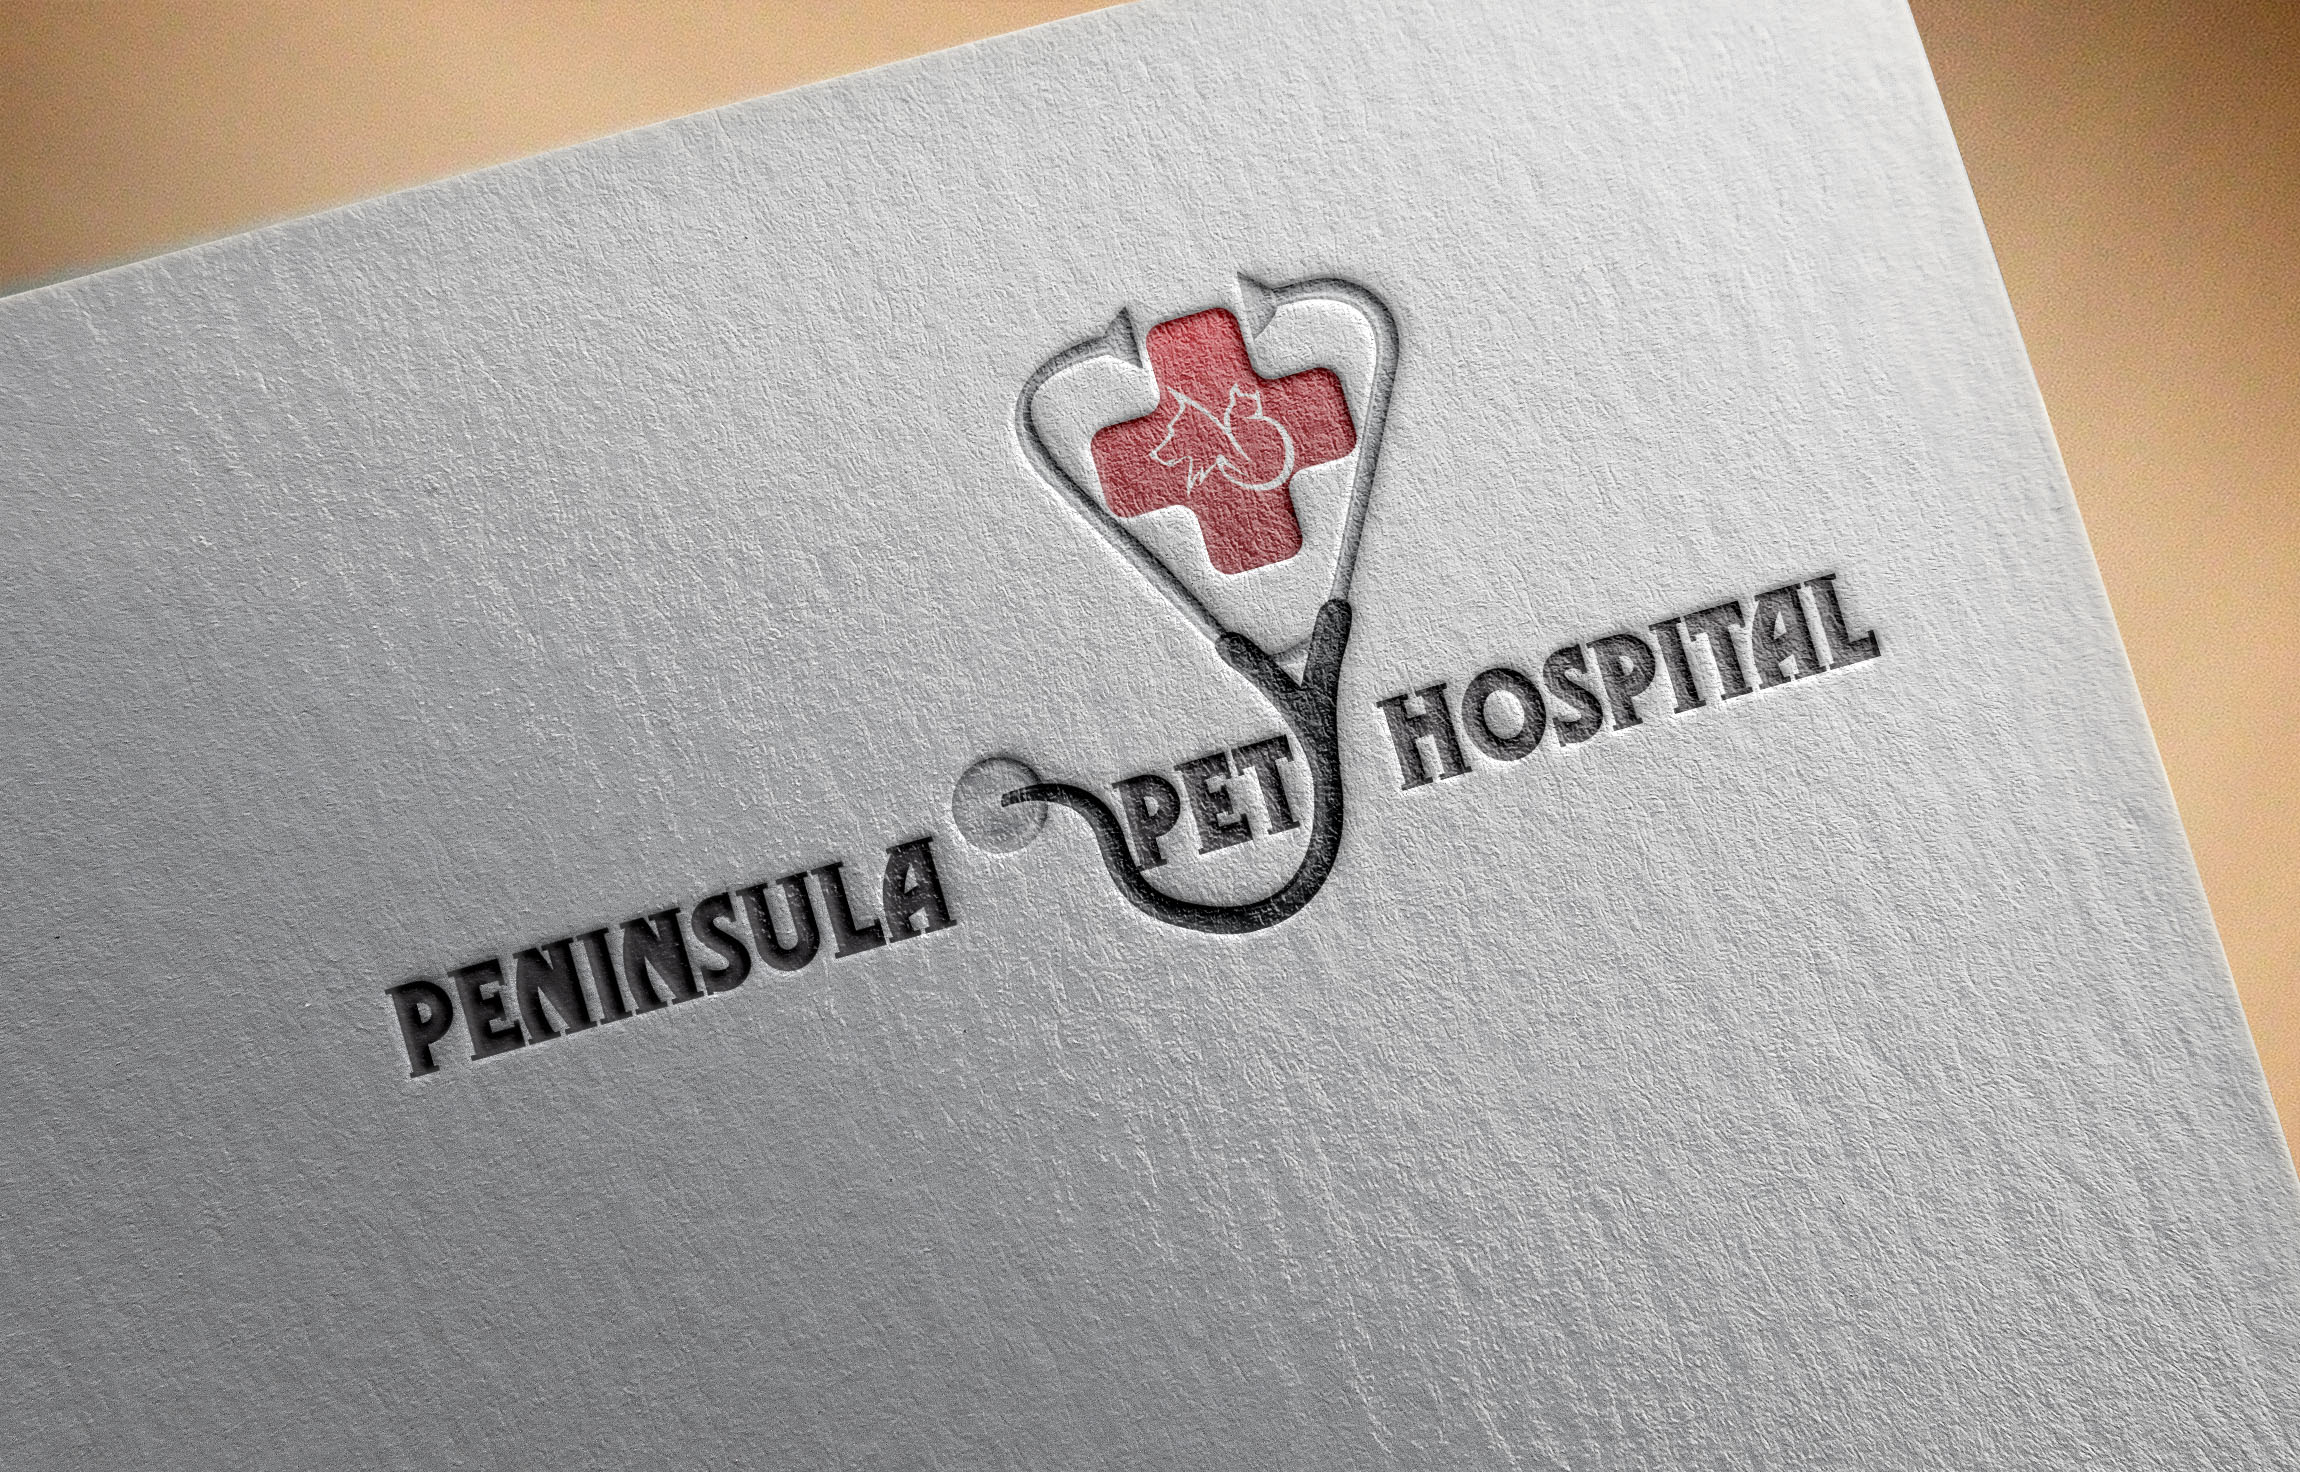 Logo Design by Umair ahmed Iqbal - Entry No. 35 in the Logo Design Contest Creative Logo Design for Peninsula Pet Hospital.